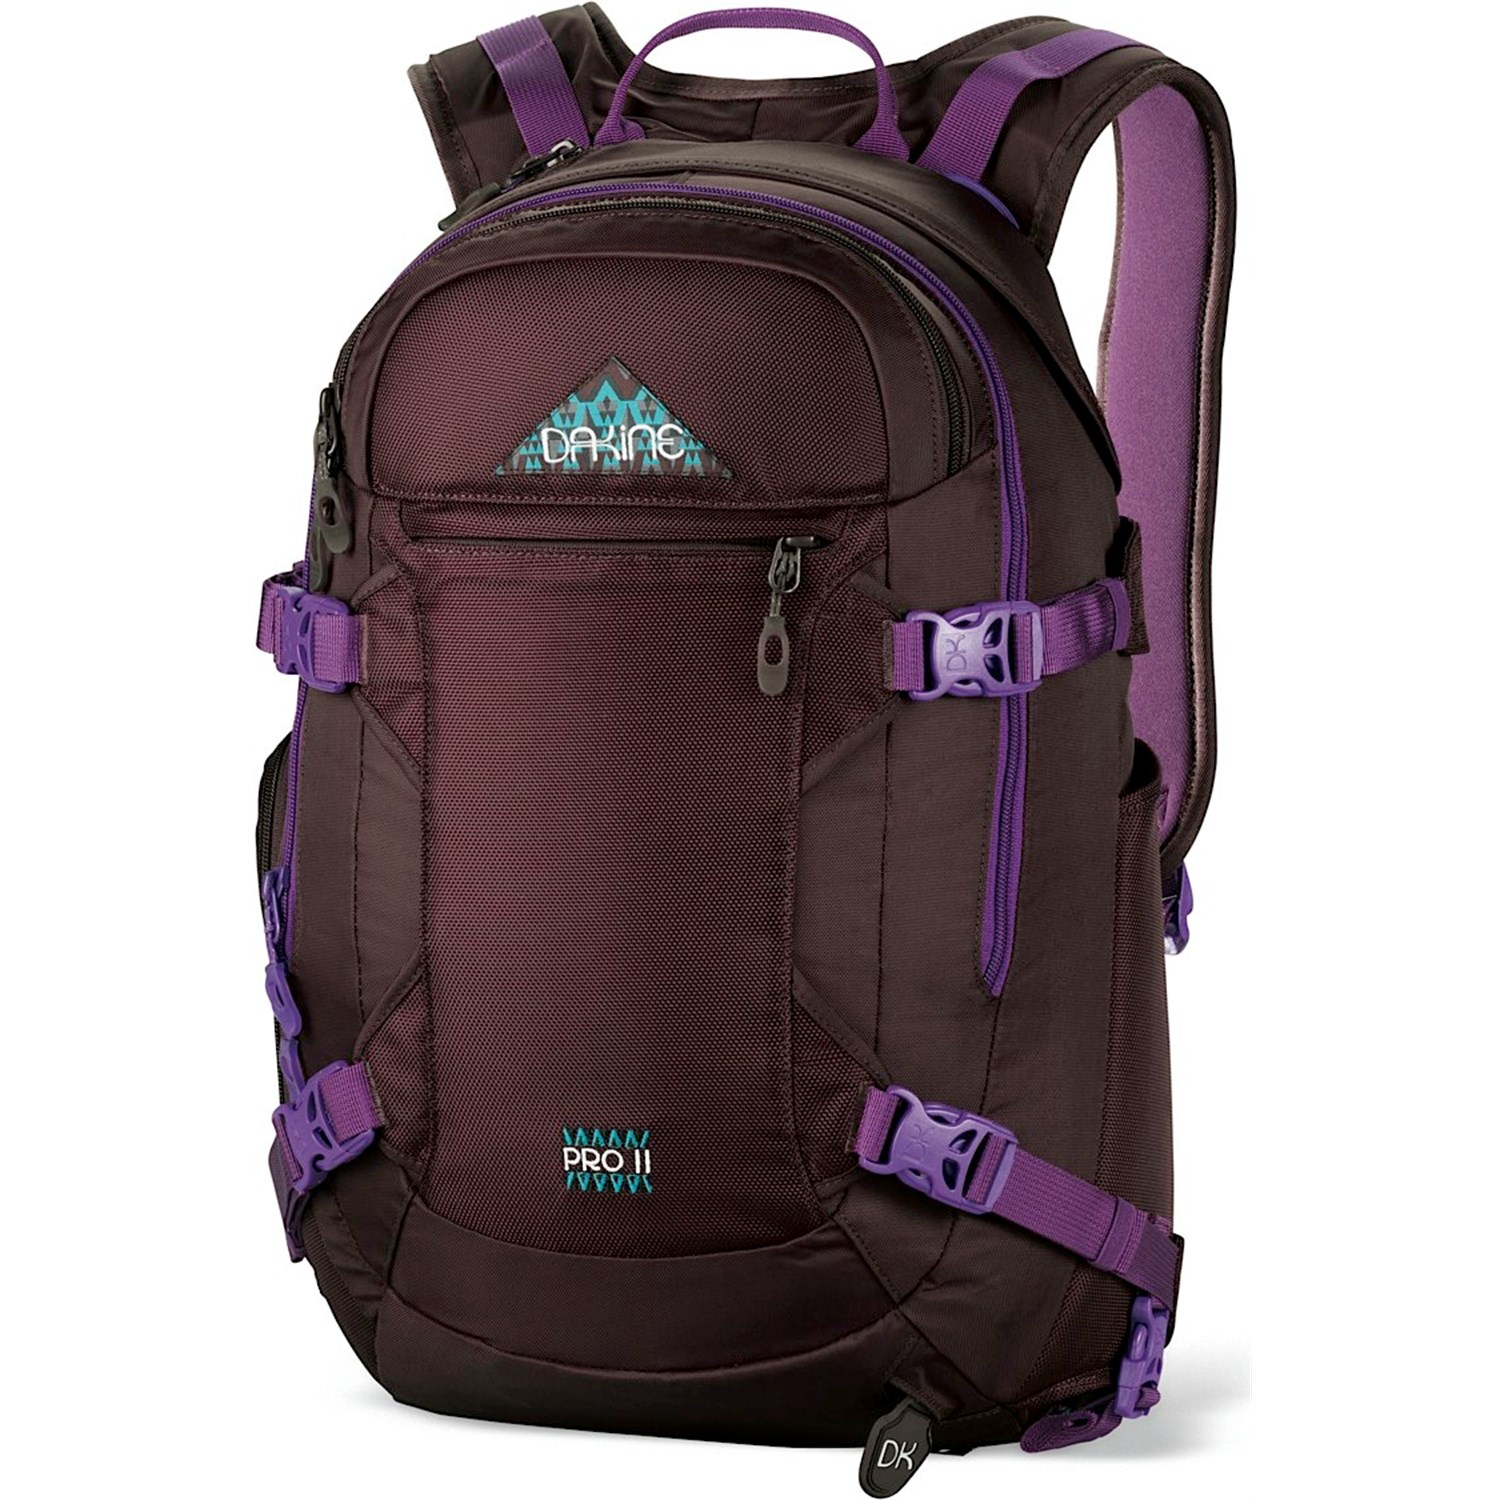 heli pro backpack with Dakine Pro Ii Backpack Womens on Watch additionally Search also Heli Pro Pacific Pack Dakine besides Dakine Backpacks Dakine Ski And Snowboard Backpacks additionally Watch.